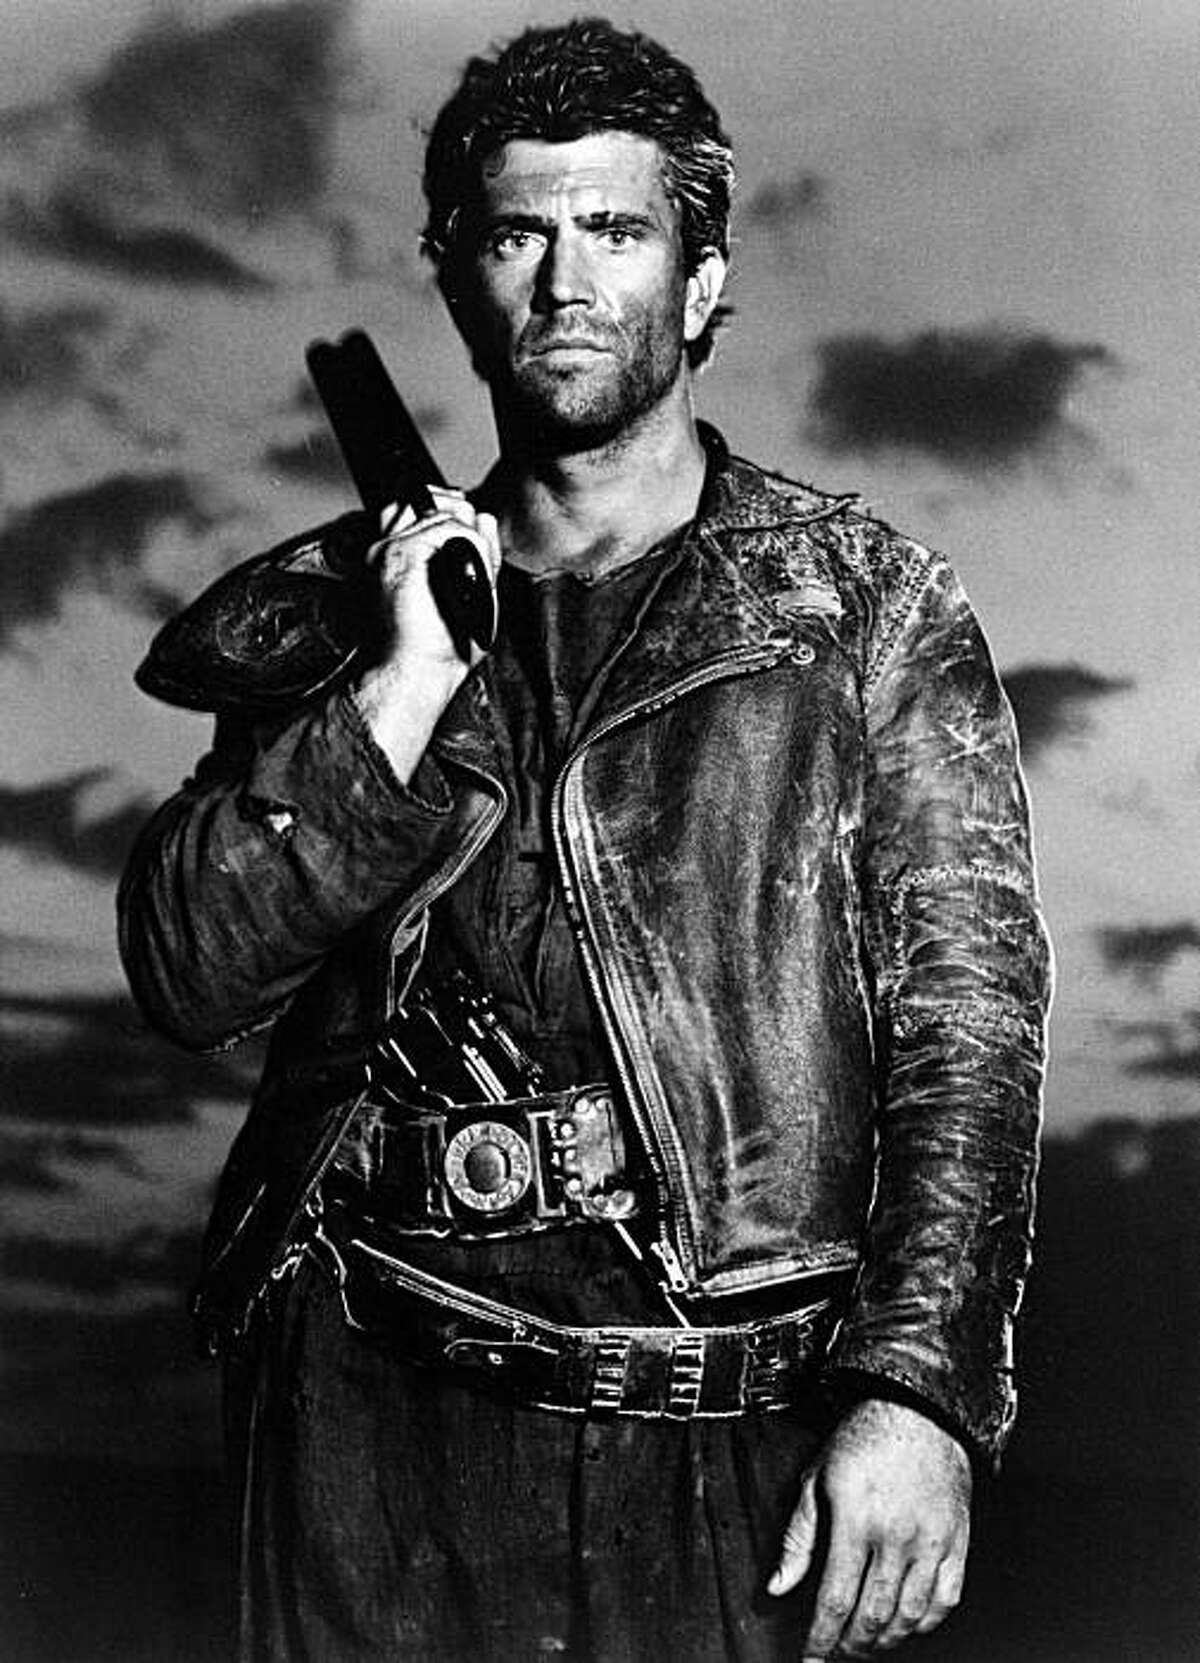 """Actor Mel Gibson is shown as Mad Max in the 1985 action-adventure film """"Mad Max Beyond Thunderdome."""""""